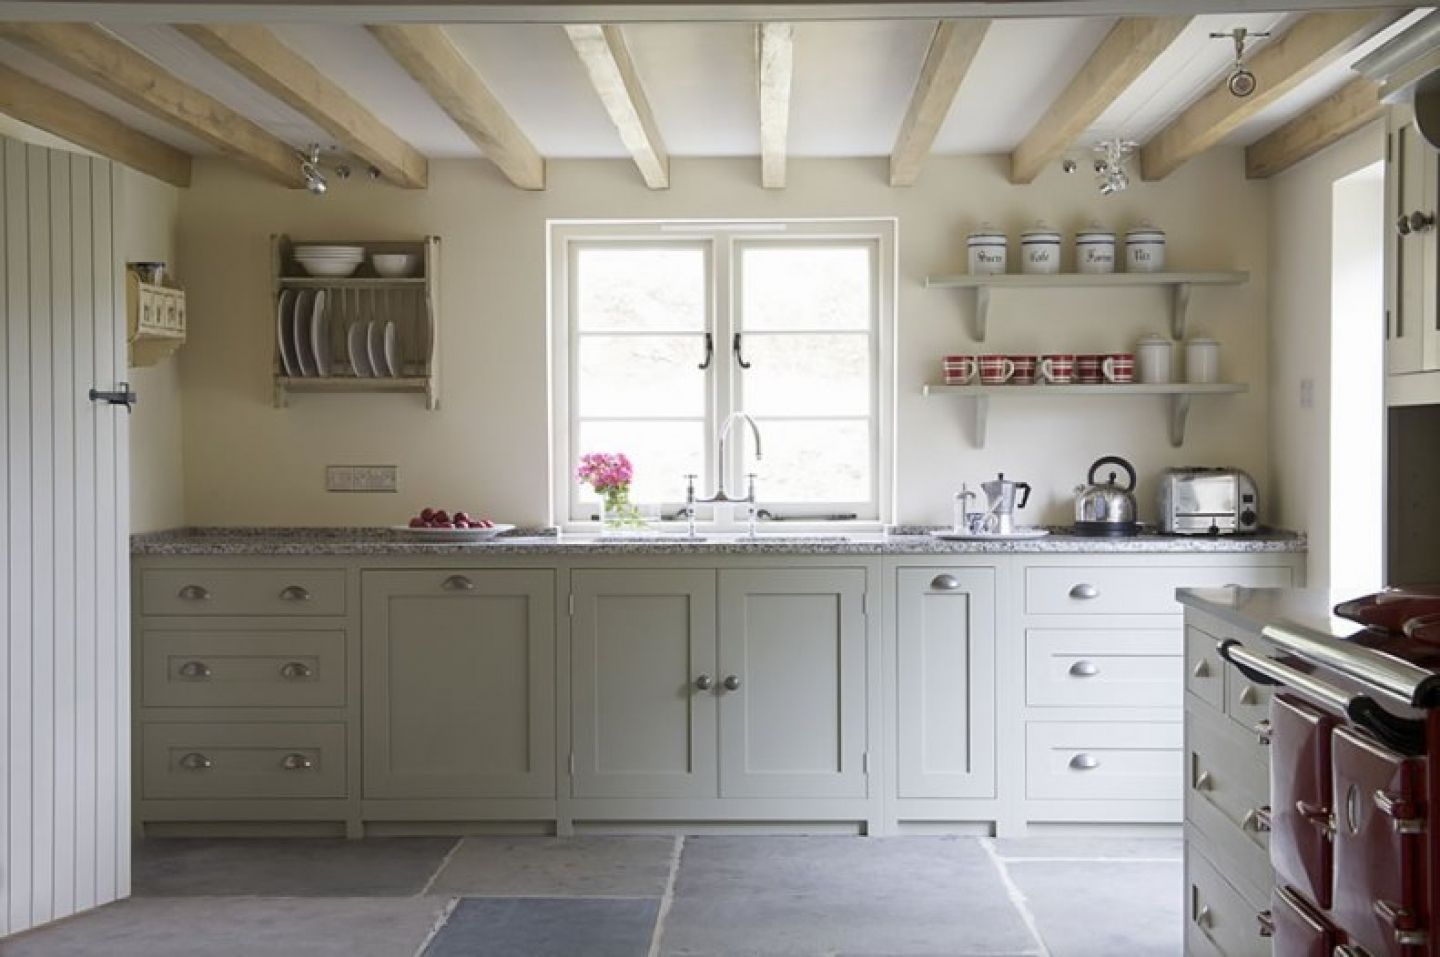 modern american country design  google search  kitchen  - kitchen country